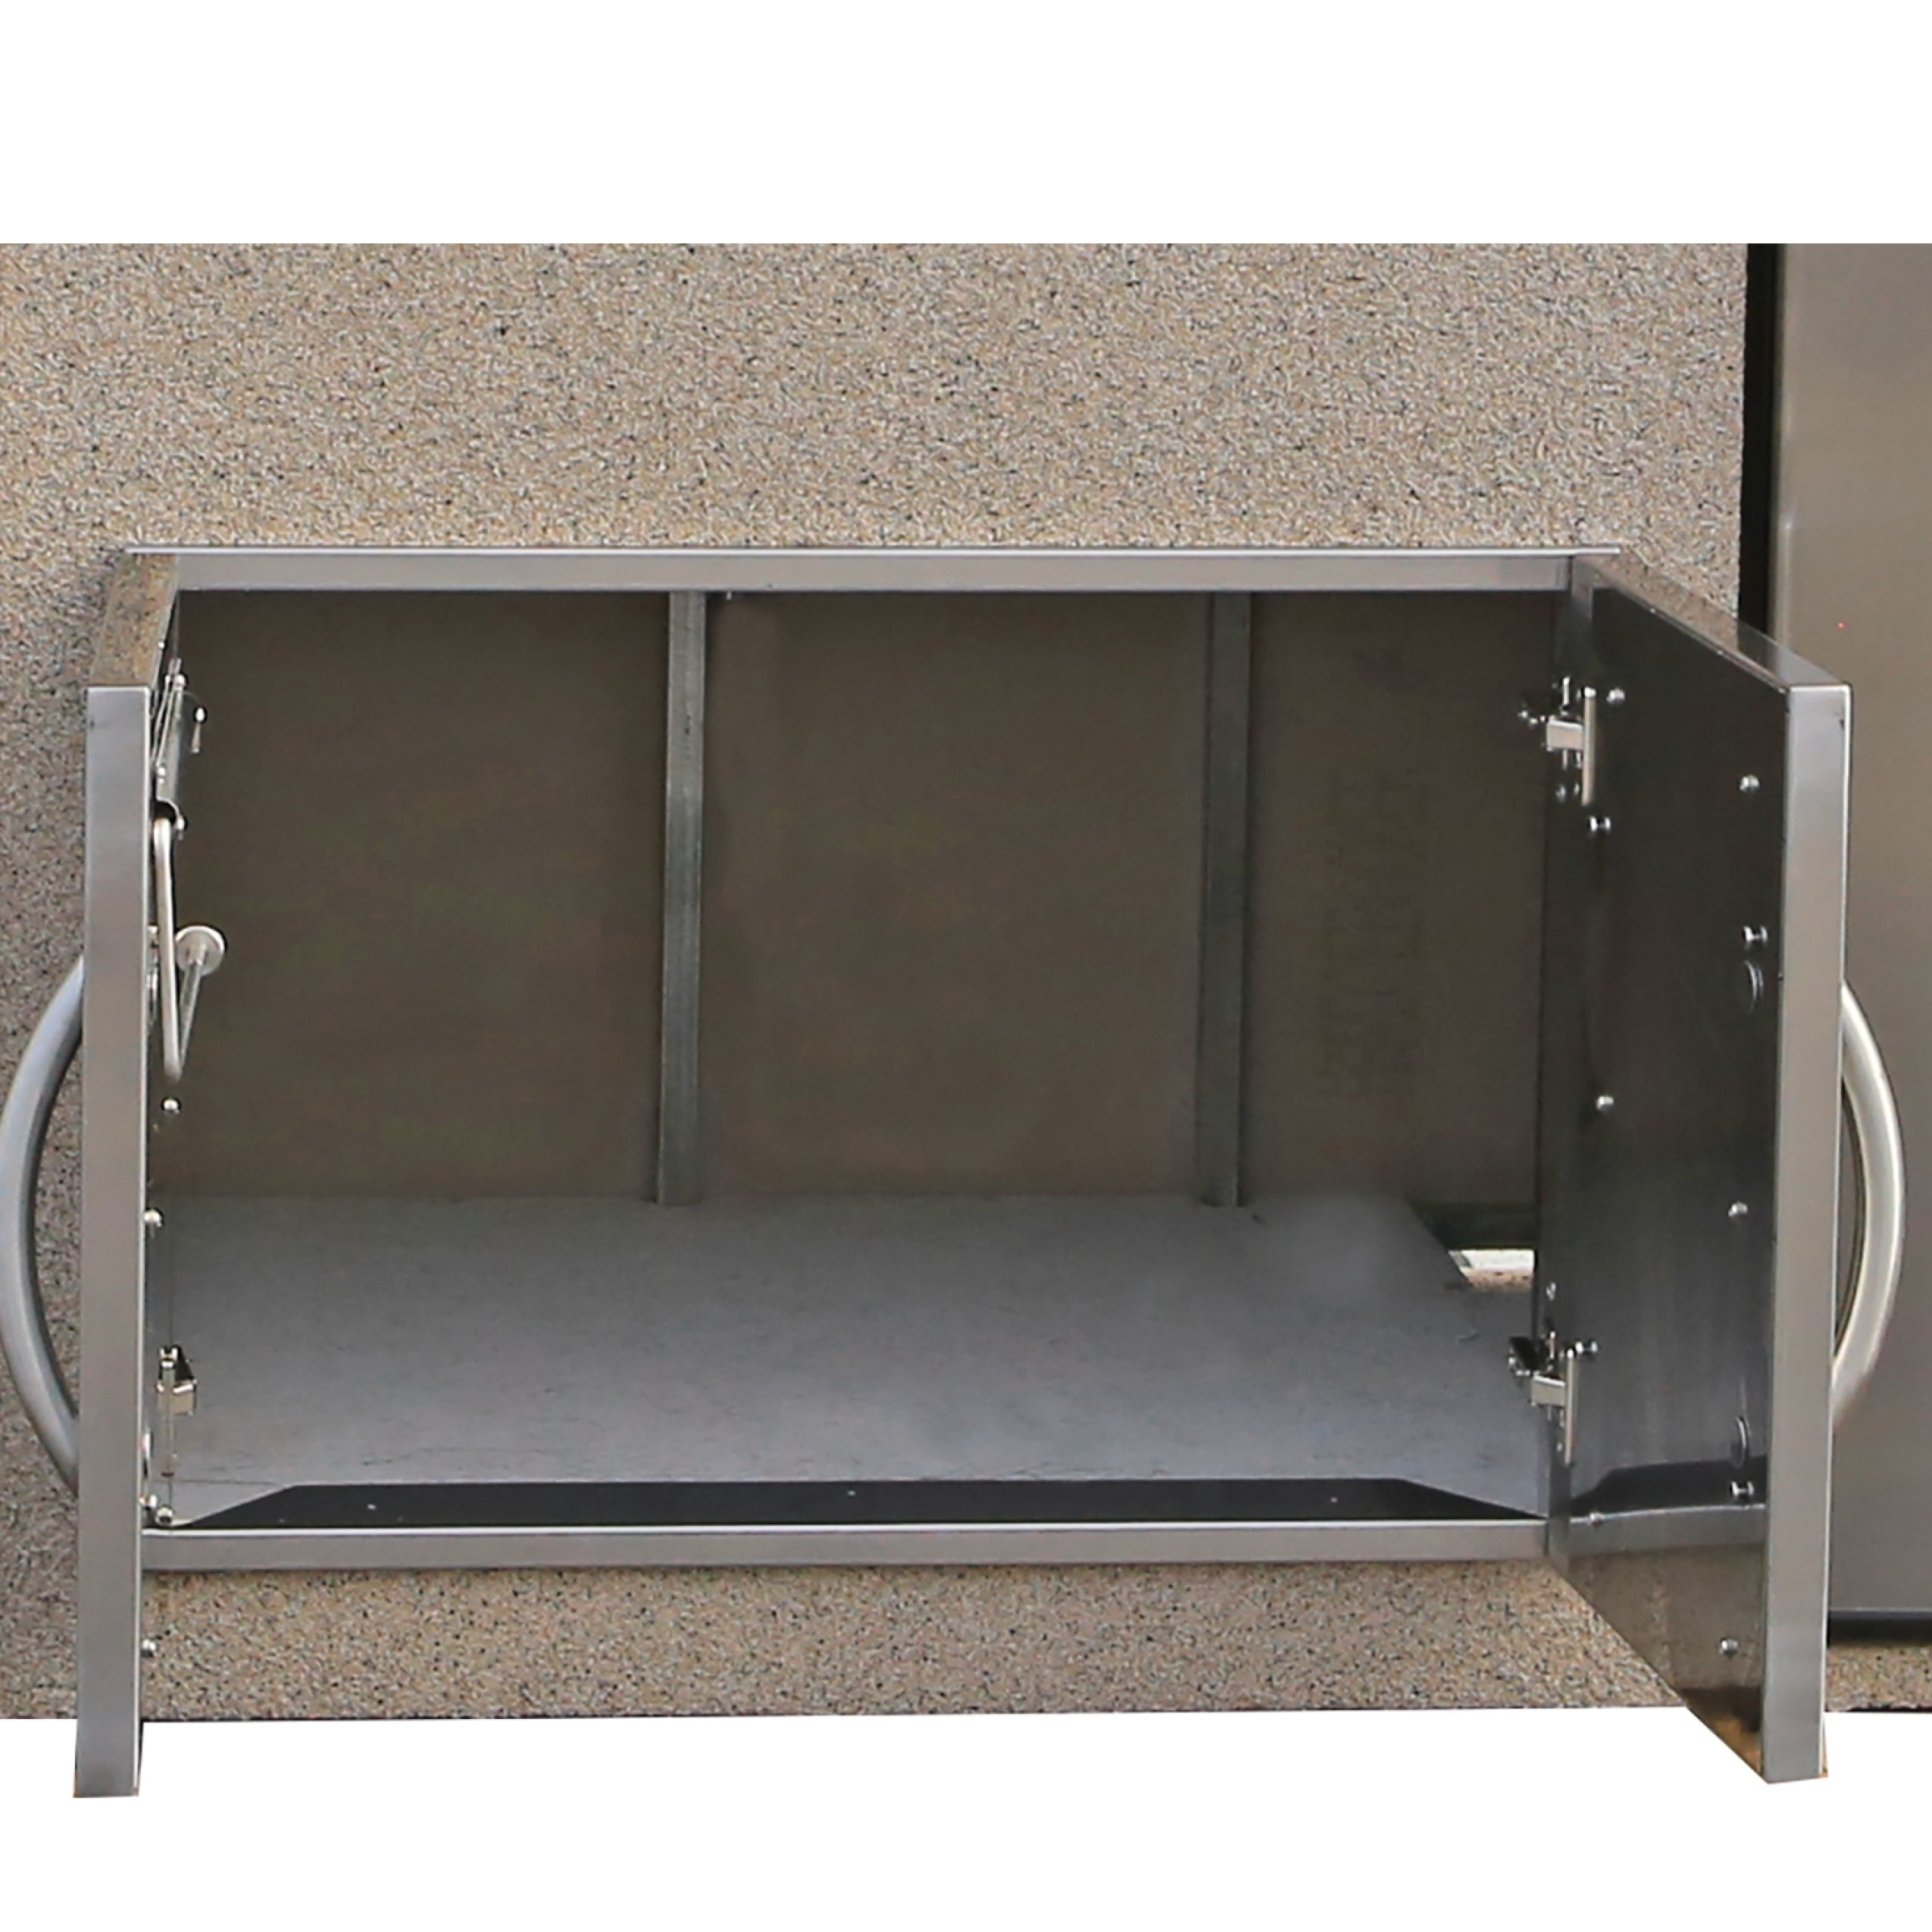 Paradise Stucco Tile Outdoor Entertainment Center With Refrigerators Free Shipping Today 18090260